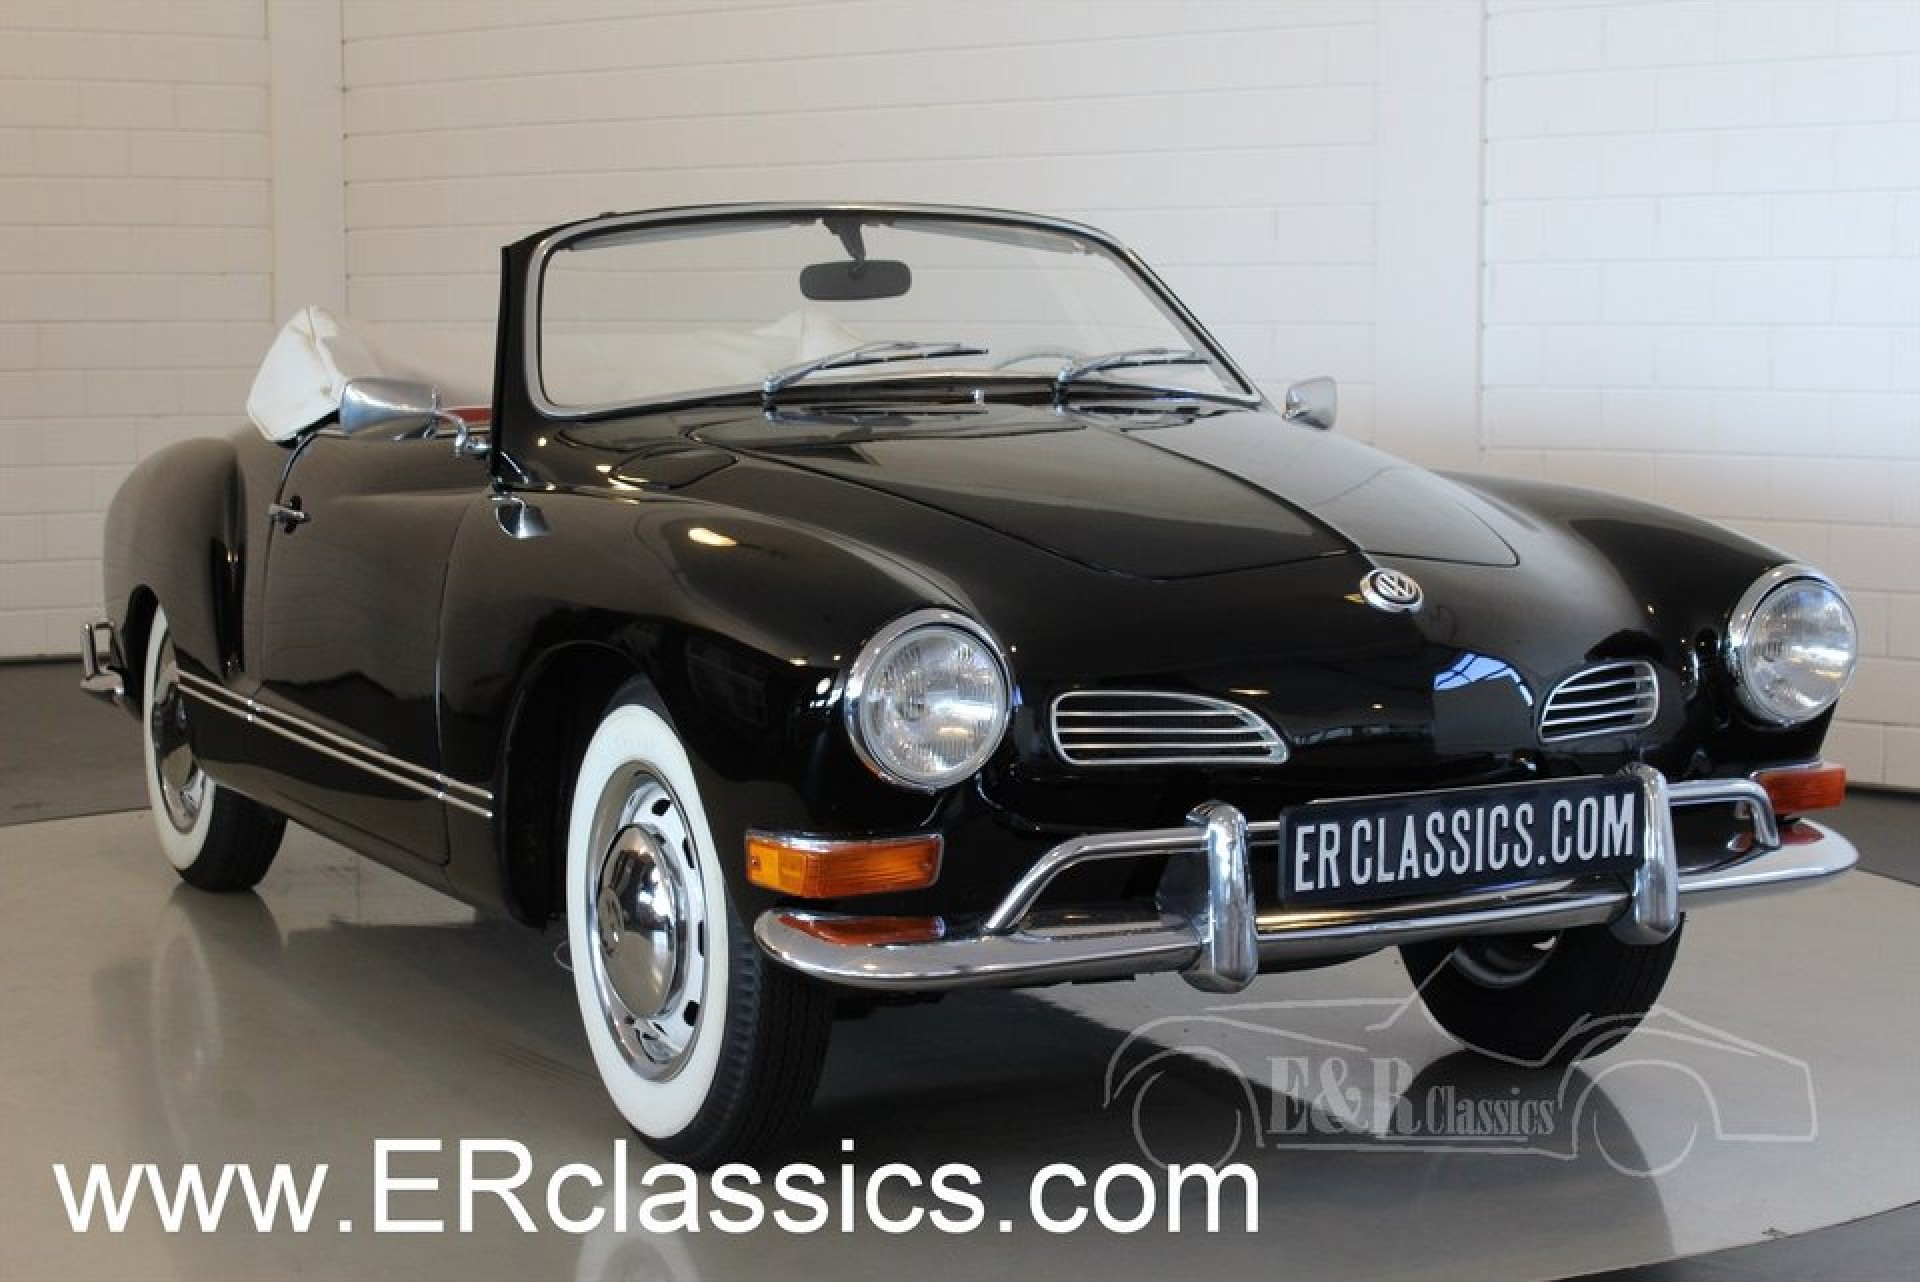 volkswagen karmann ghia 1971 te koop bij erclassics. Black Bedroom Furniture Sets. Home Design Ideas